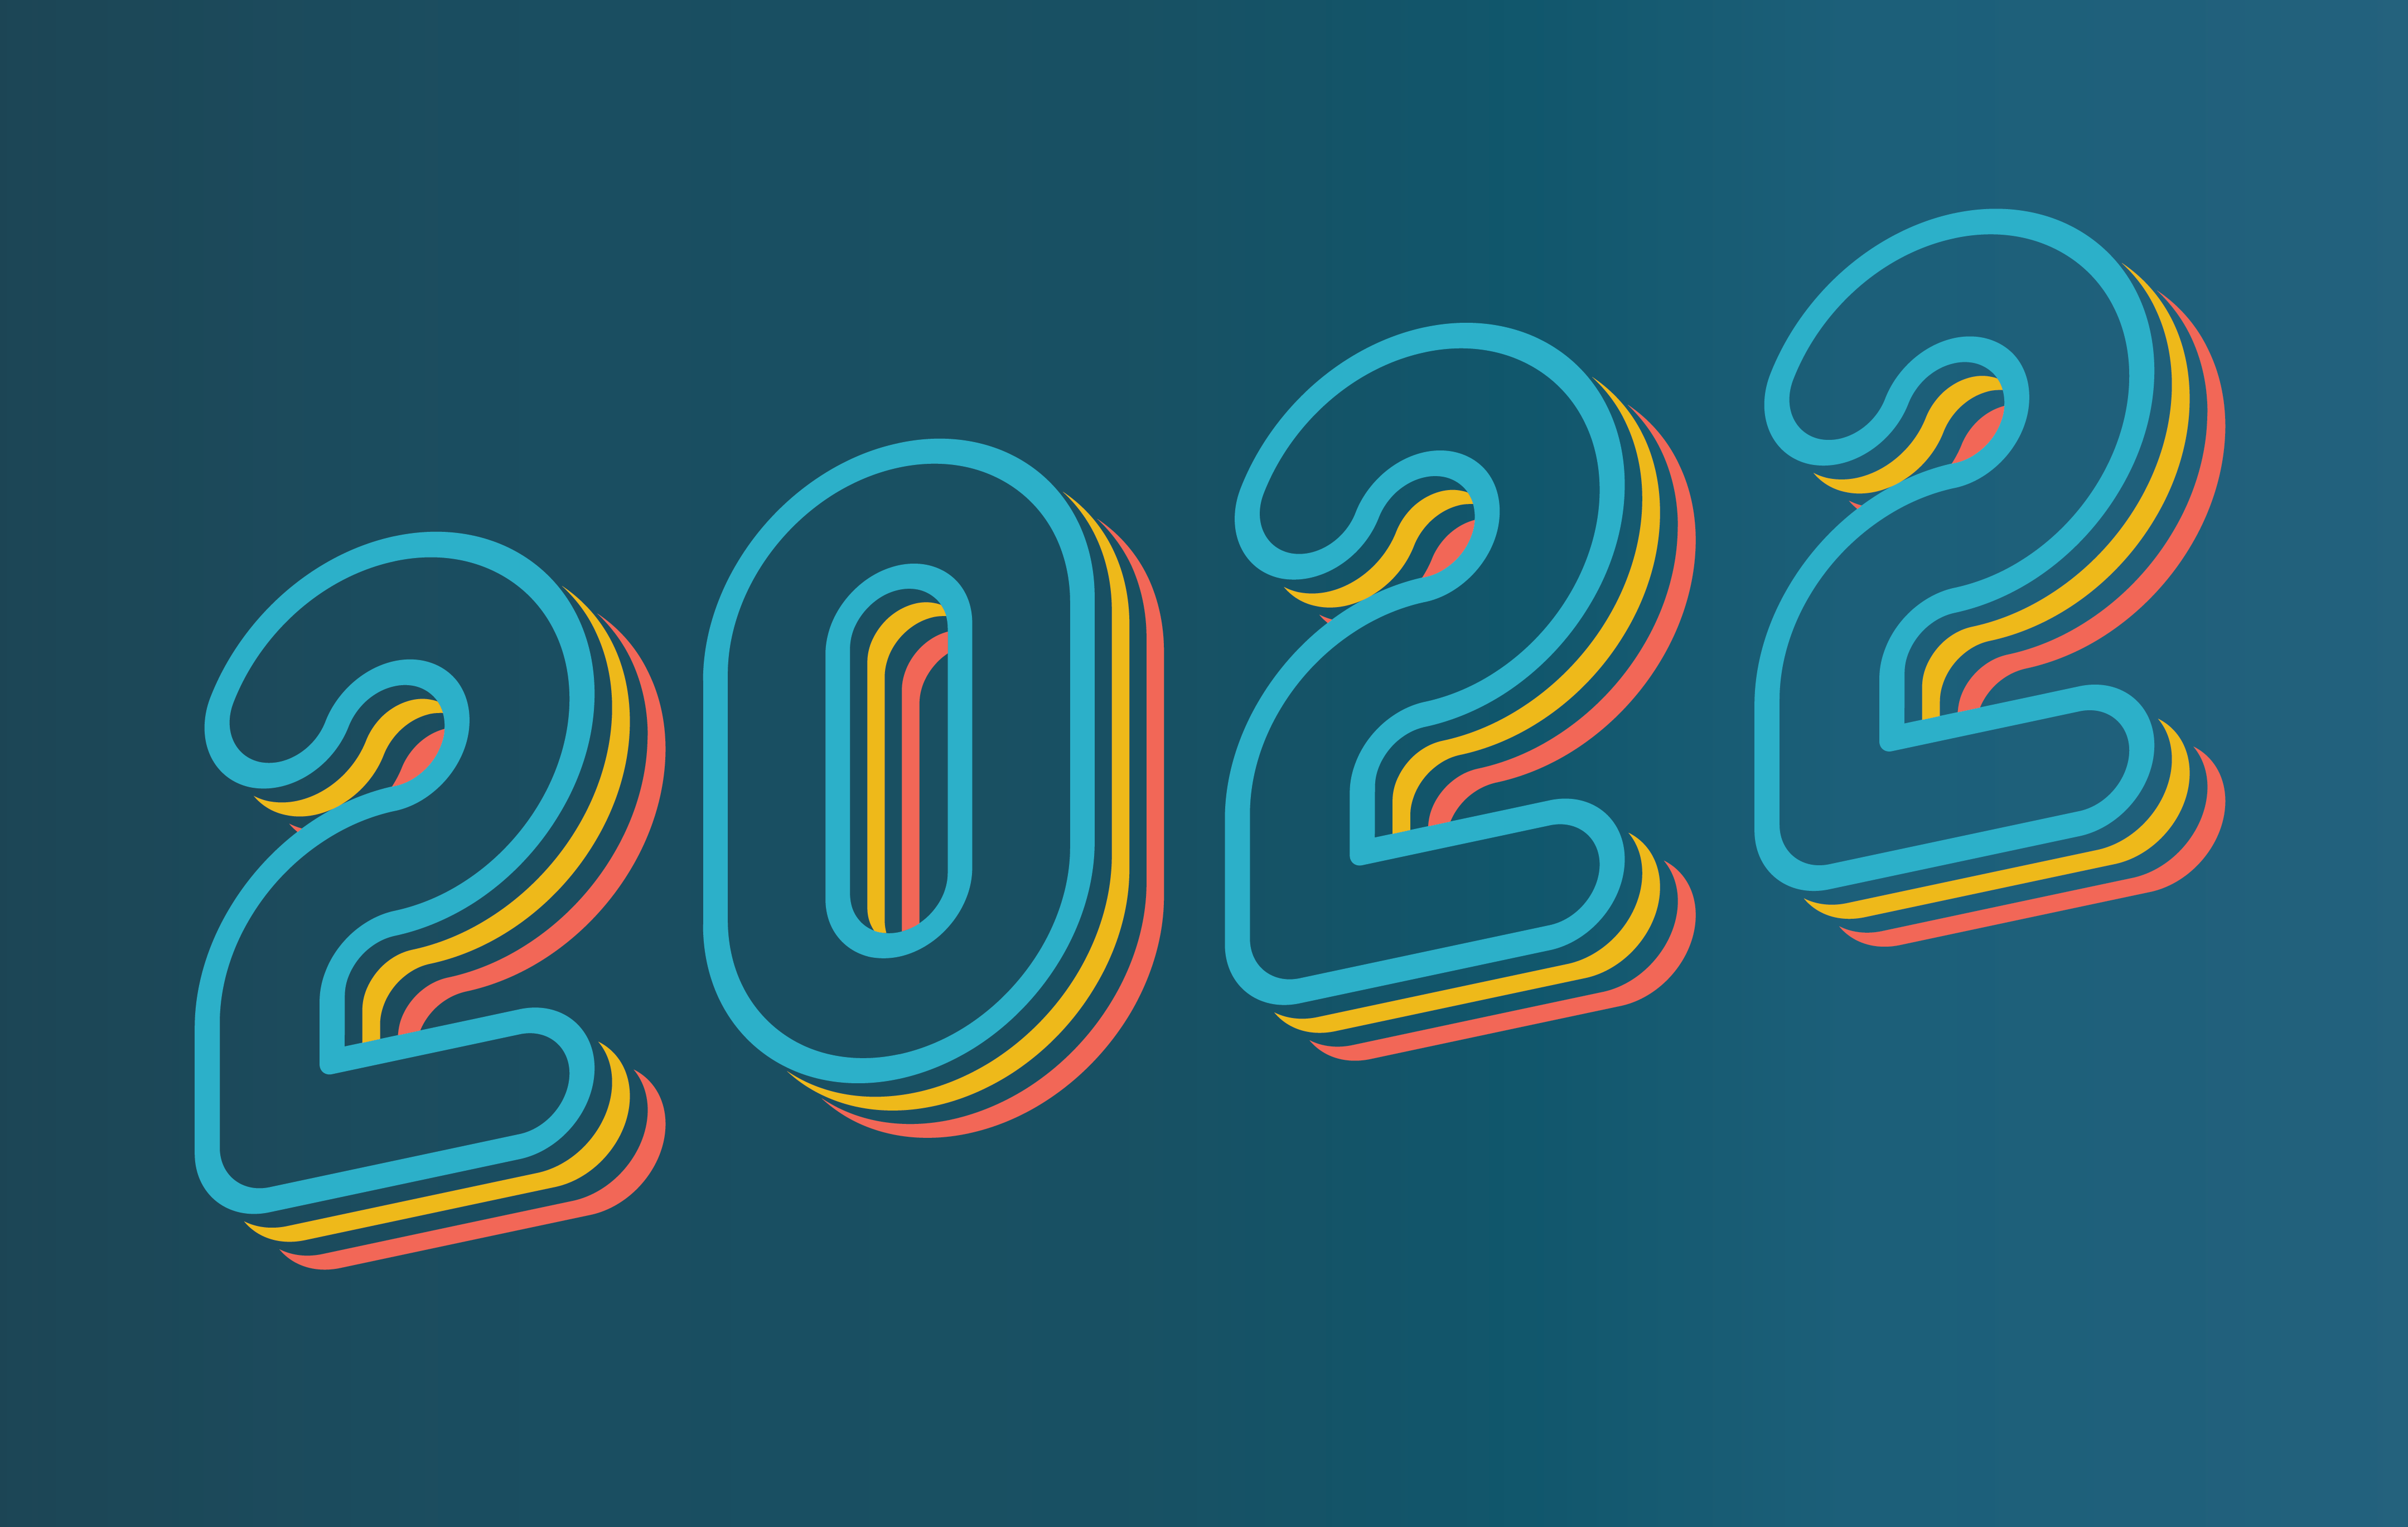 Neon 2022 against a blue background